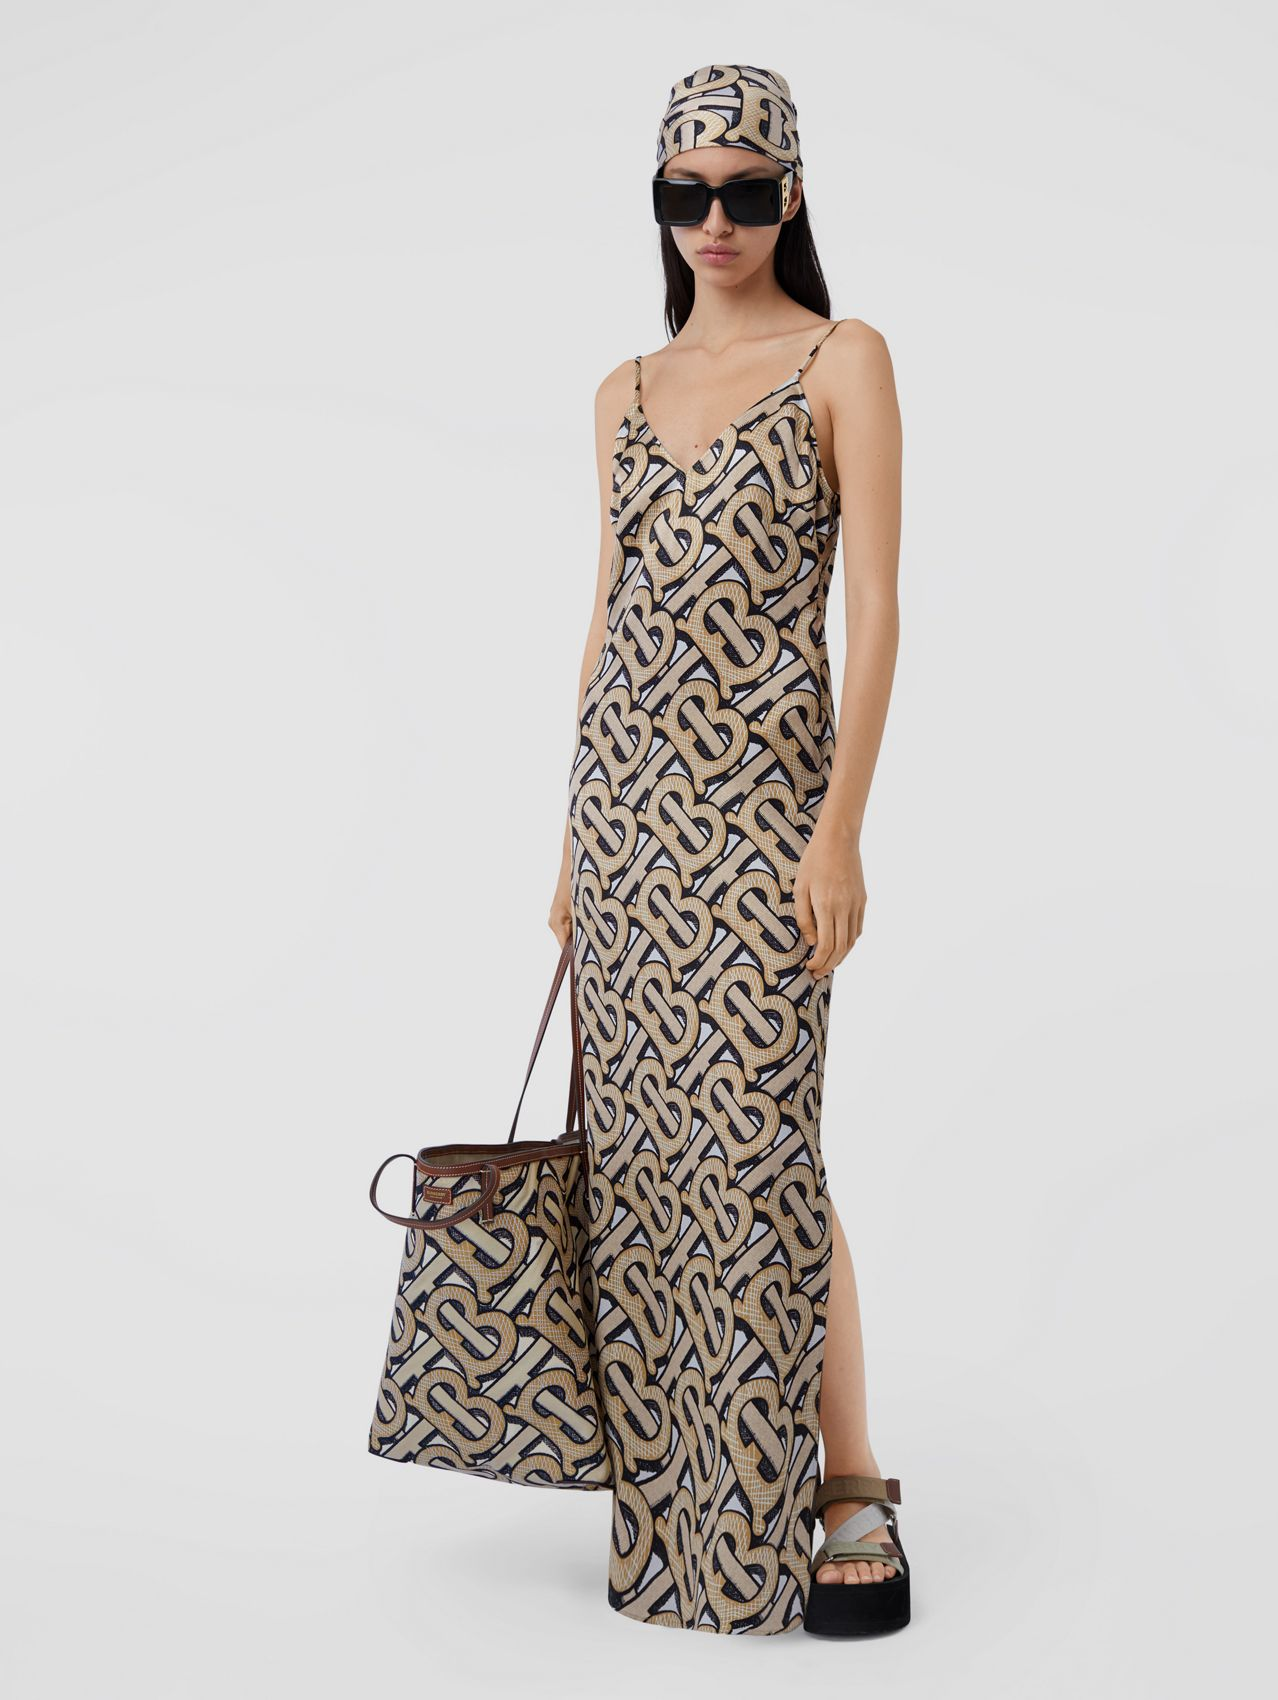 Monogram Print Silk Satin Slip Dress in Dark Beige